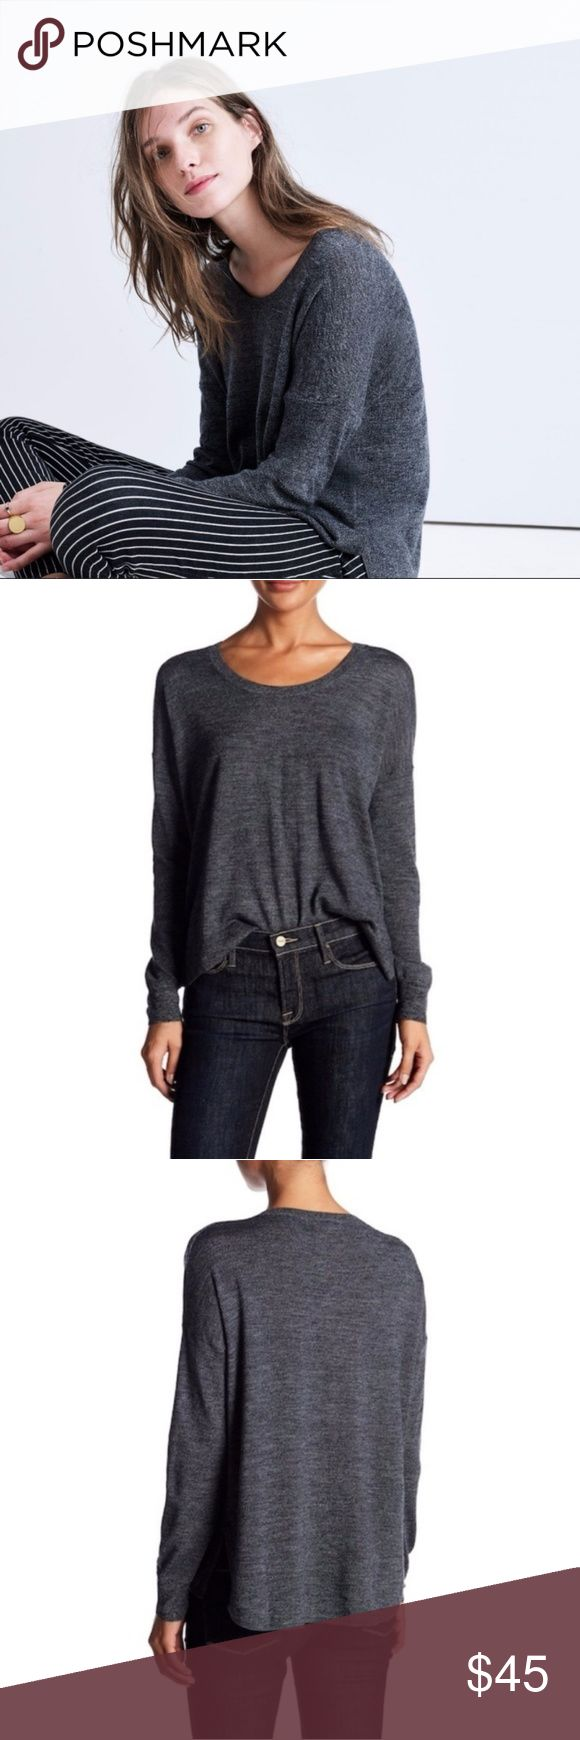 """New MADEWELL Long Sleeve Merino Wool Pullover A long sleeve merino wool pullover with solid details, hi-lo hem and knit construction. - Crew neck - Long sleeves - Merino wool construction - Solid - Approx. 25"""" shortest length, 28"""" longest length (size S)  Never worn.  A small pucker on the back of one shoulder where a tiny hole was darned.  Hardly noticeable, see pics. Otherwise excellent condition.  Size M.  Color is """"Heather Ebony.""""  No trades. Madewell Tops"""